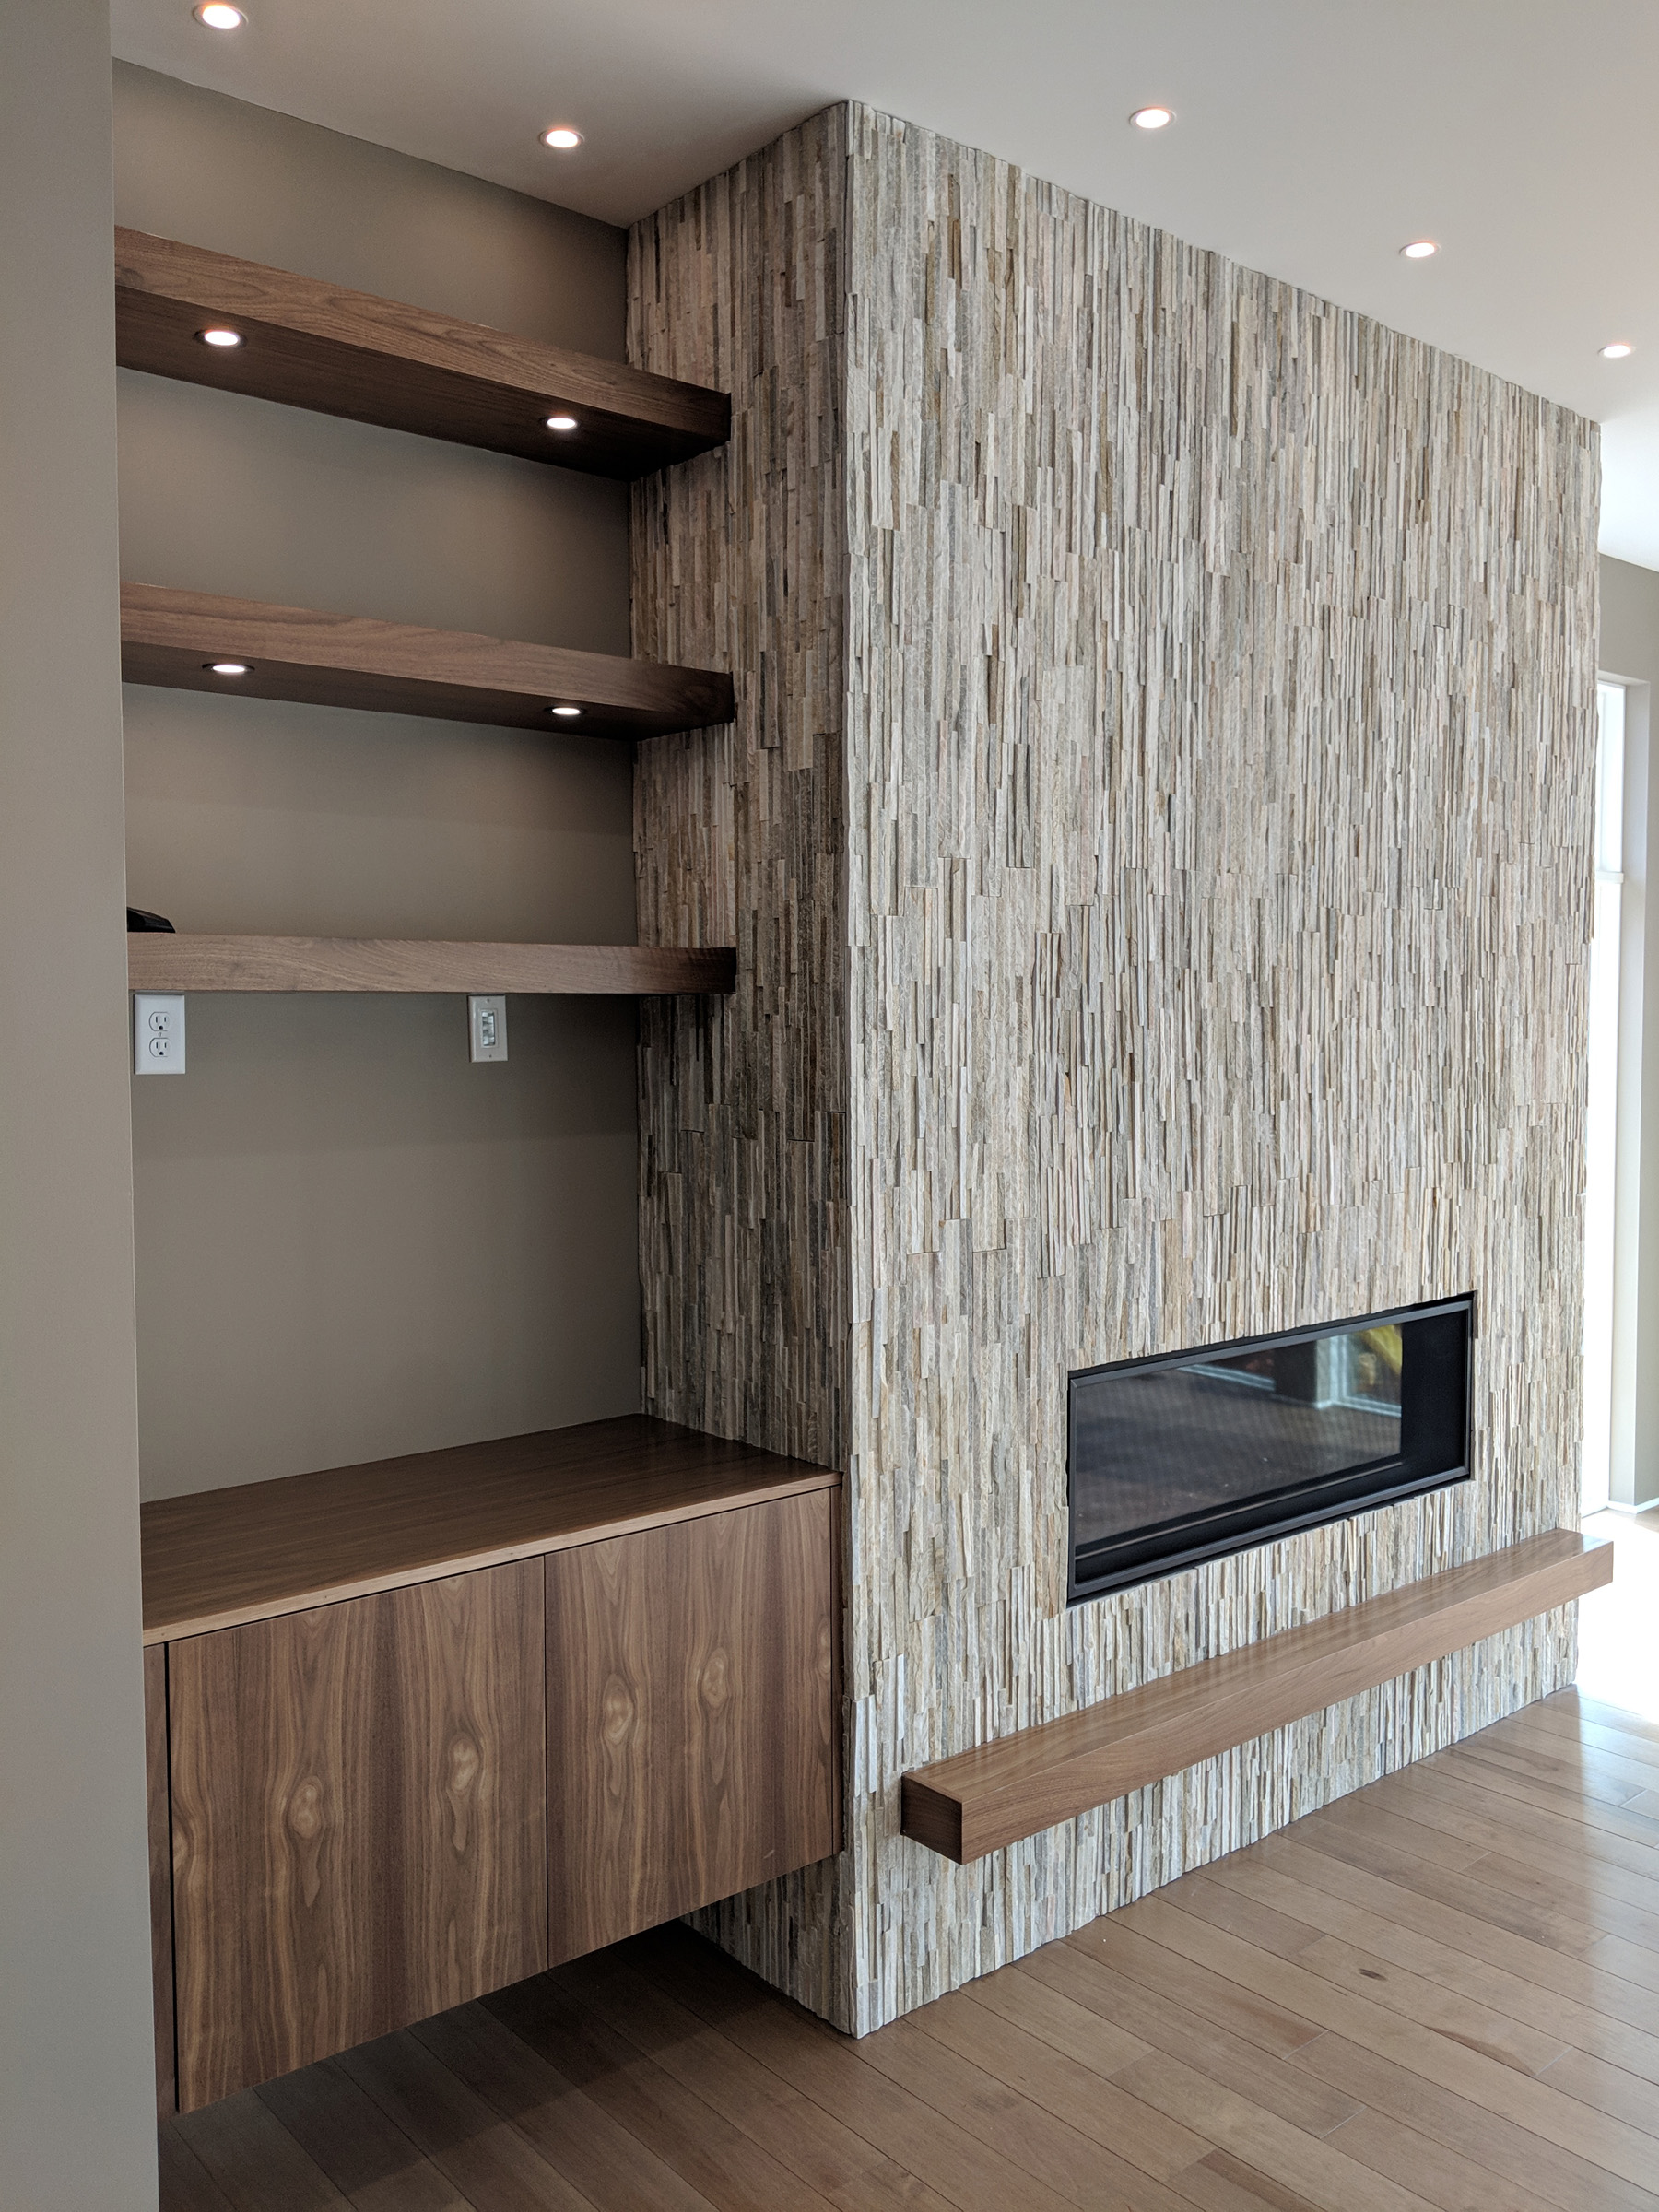 Built-in lighted shelving